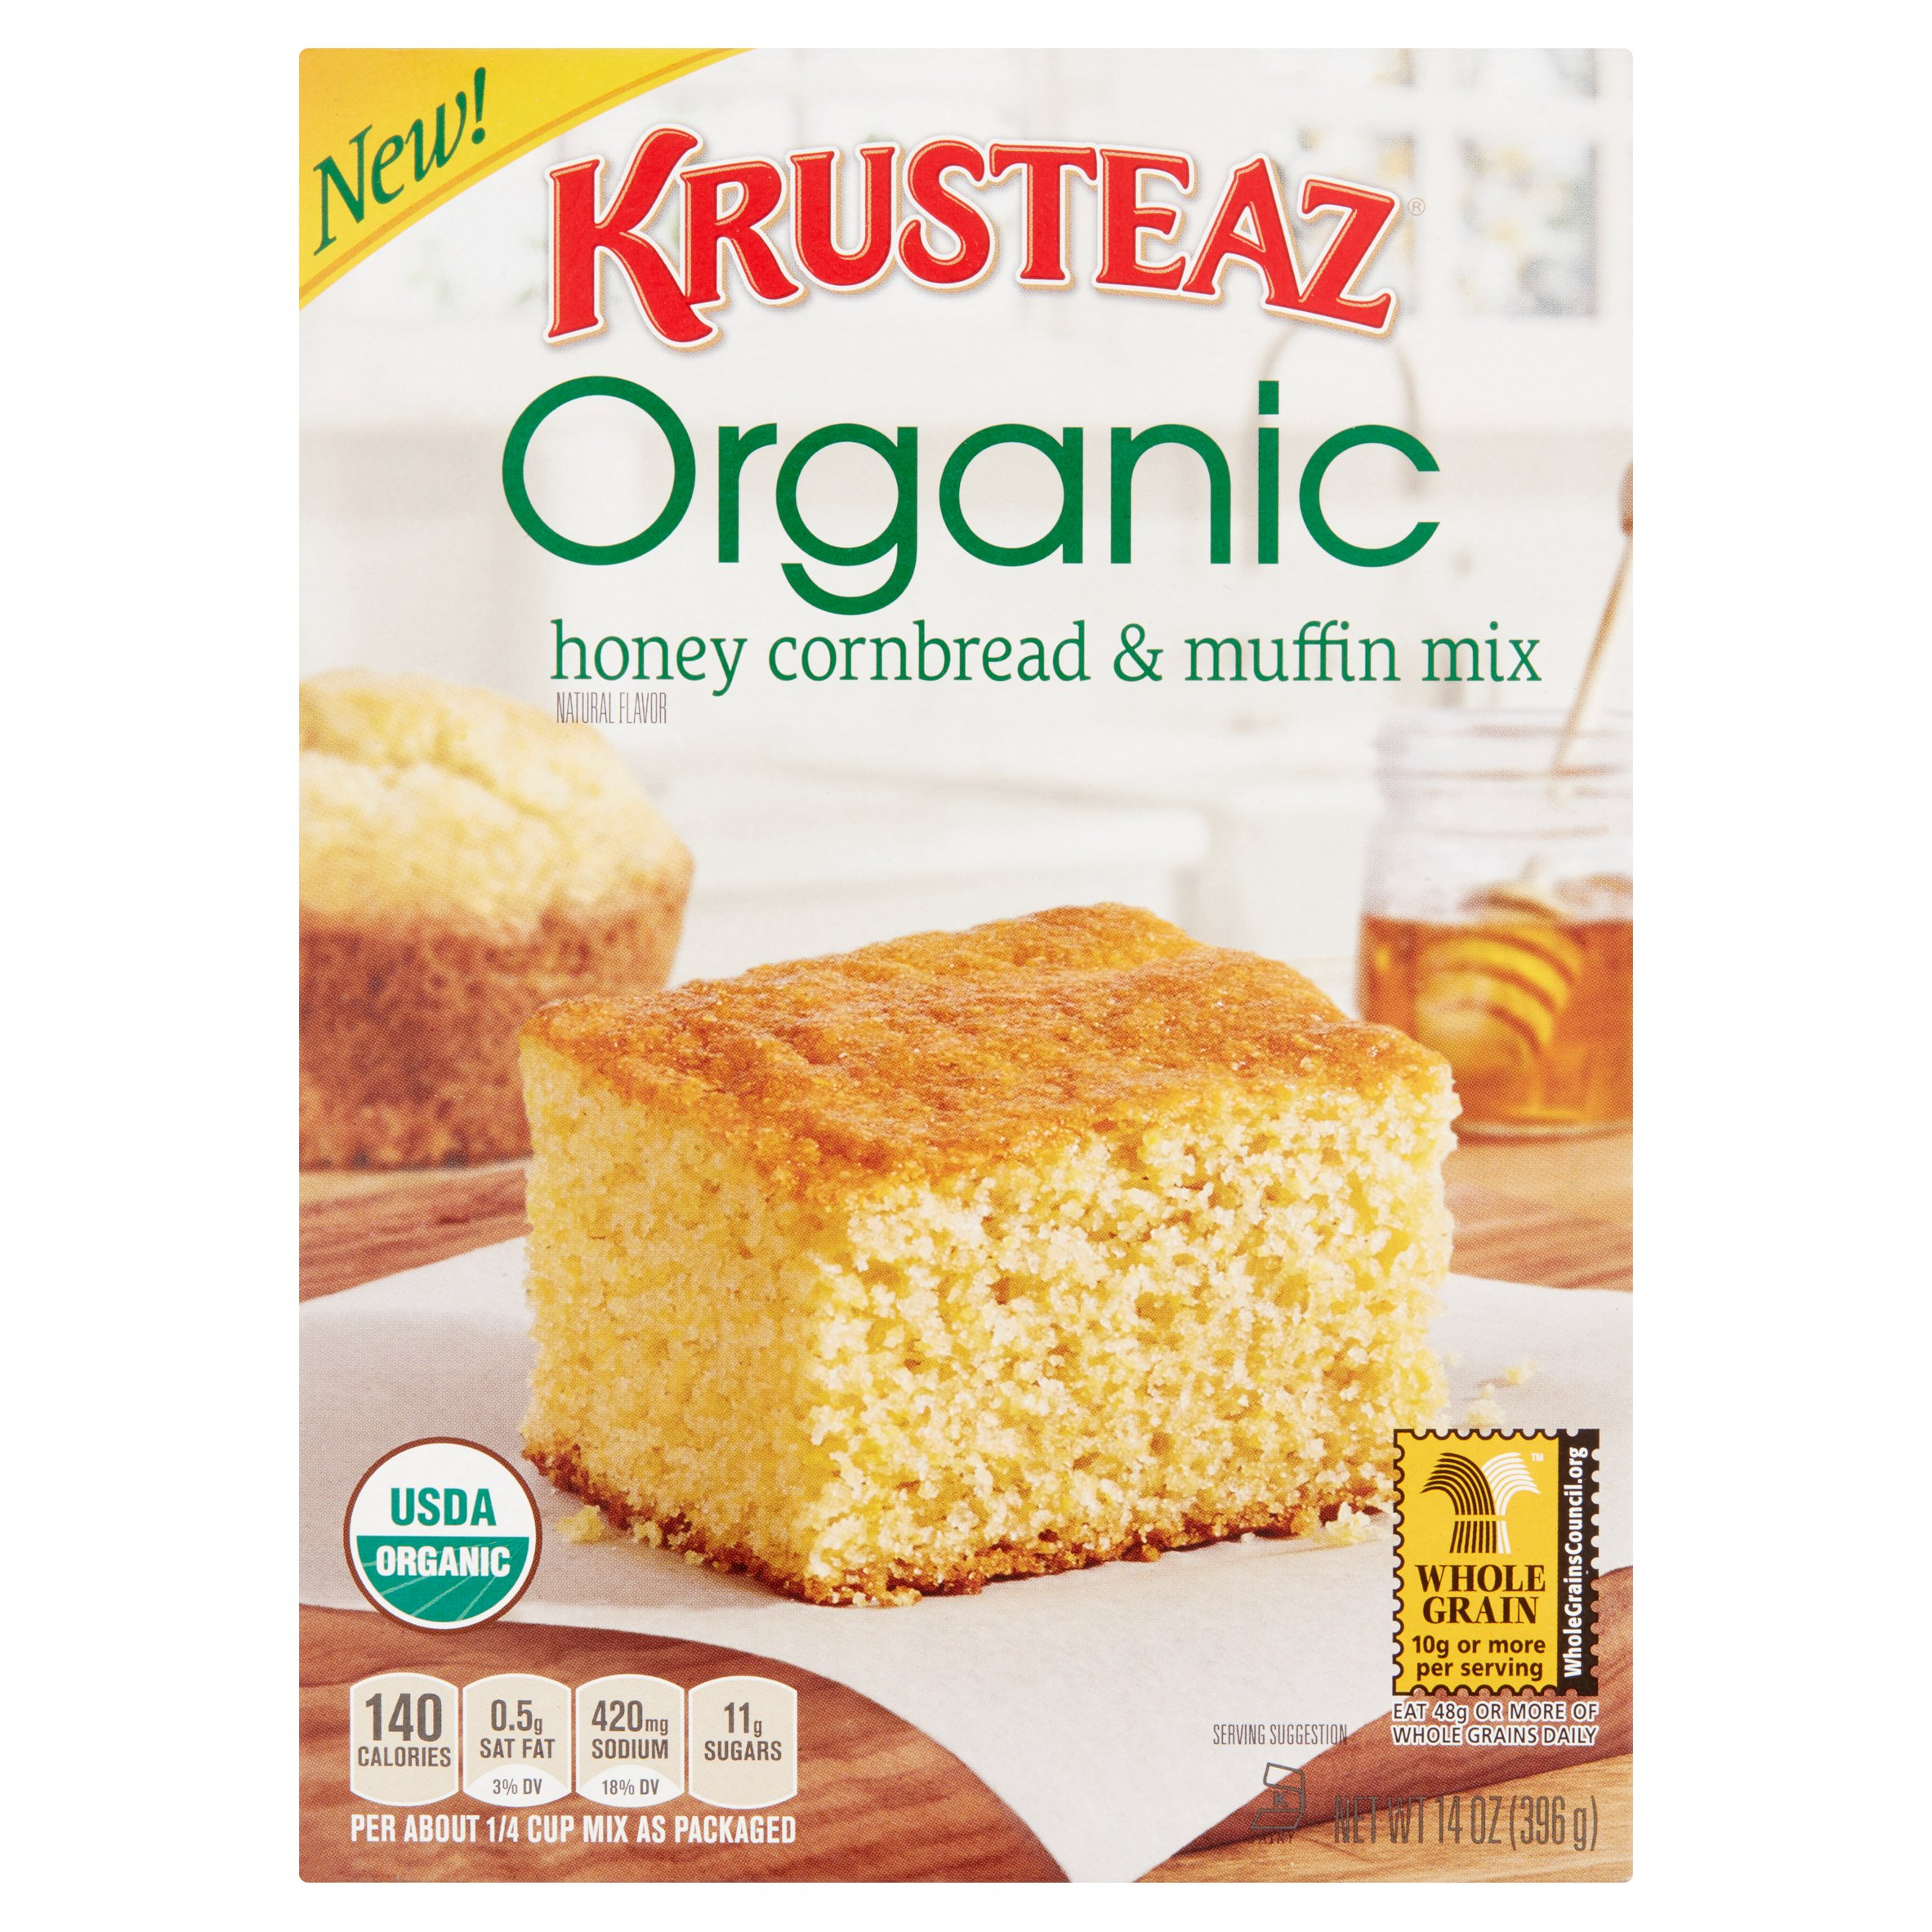 Krusteaz Organic Honey Cornbread & Muffin Mix, 14 oz by Continental Mills